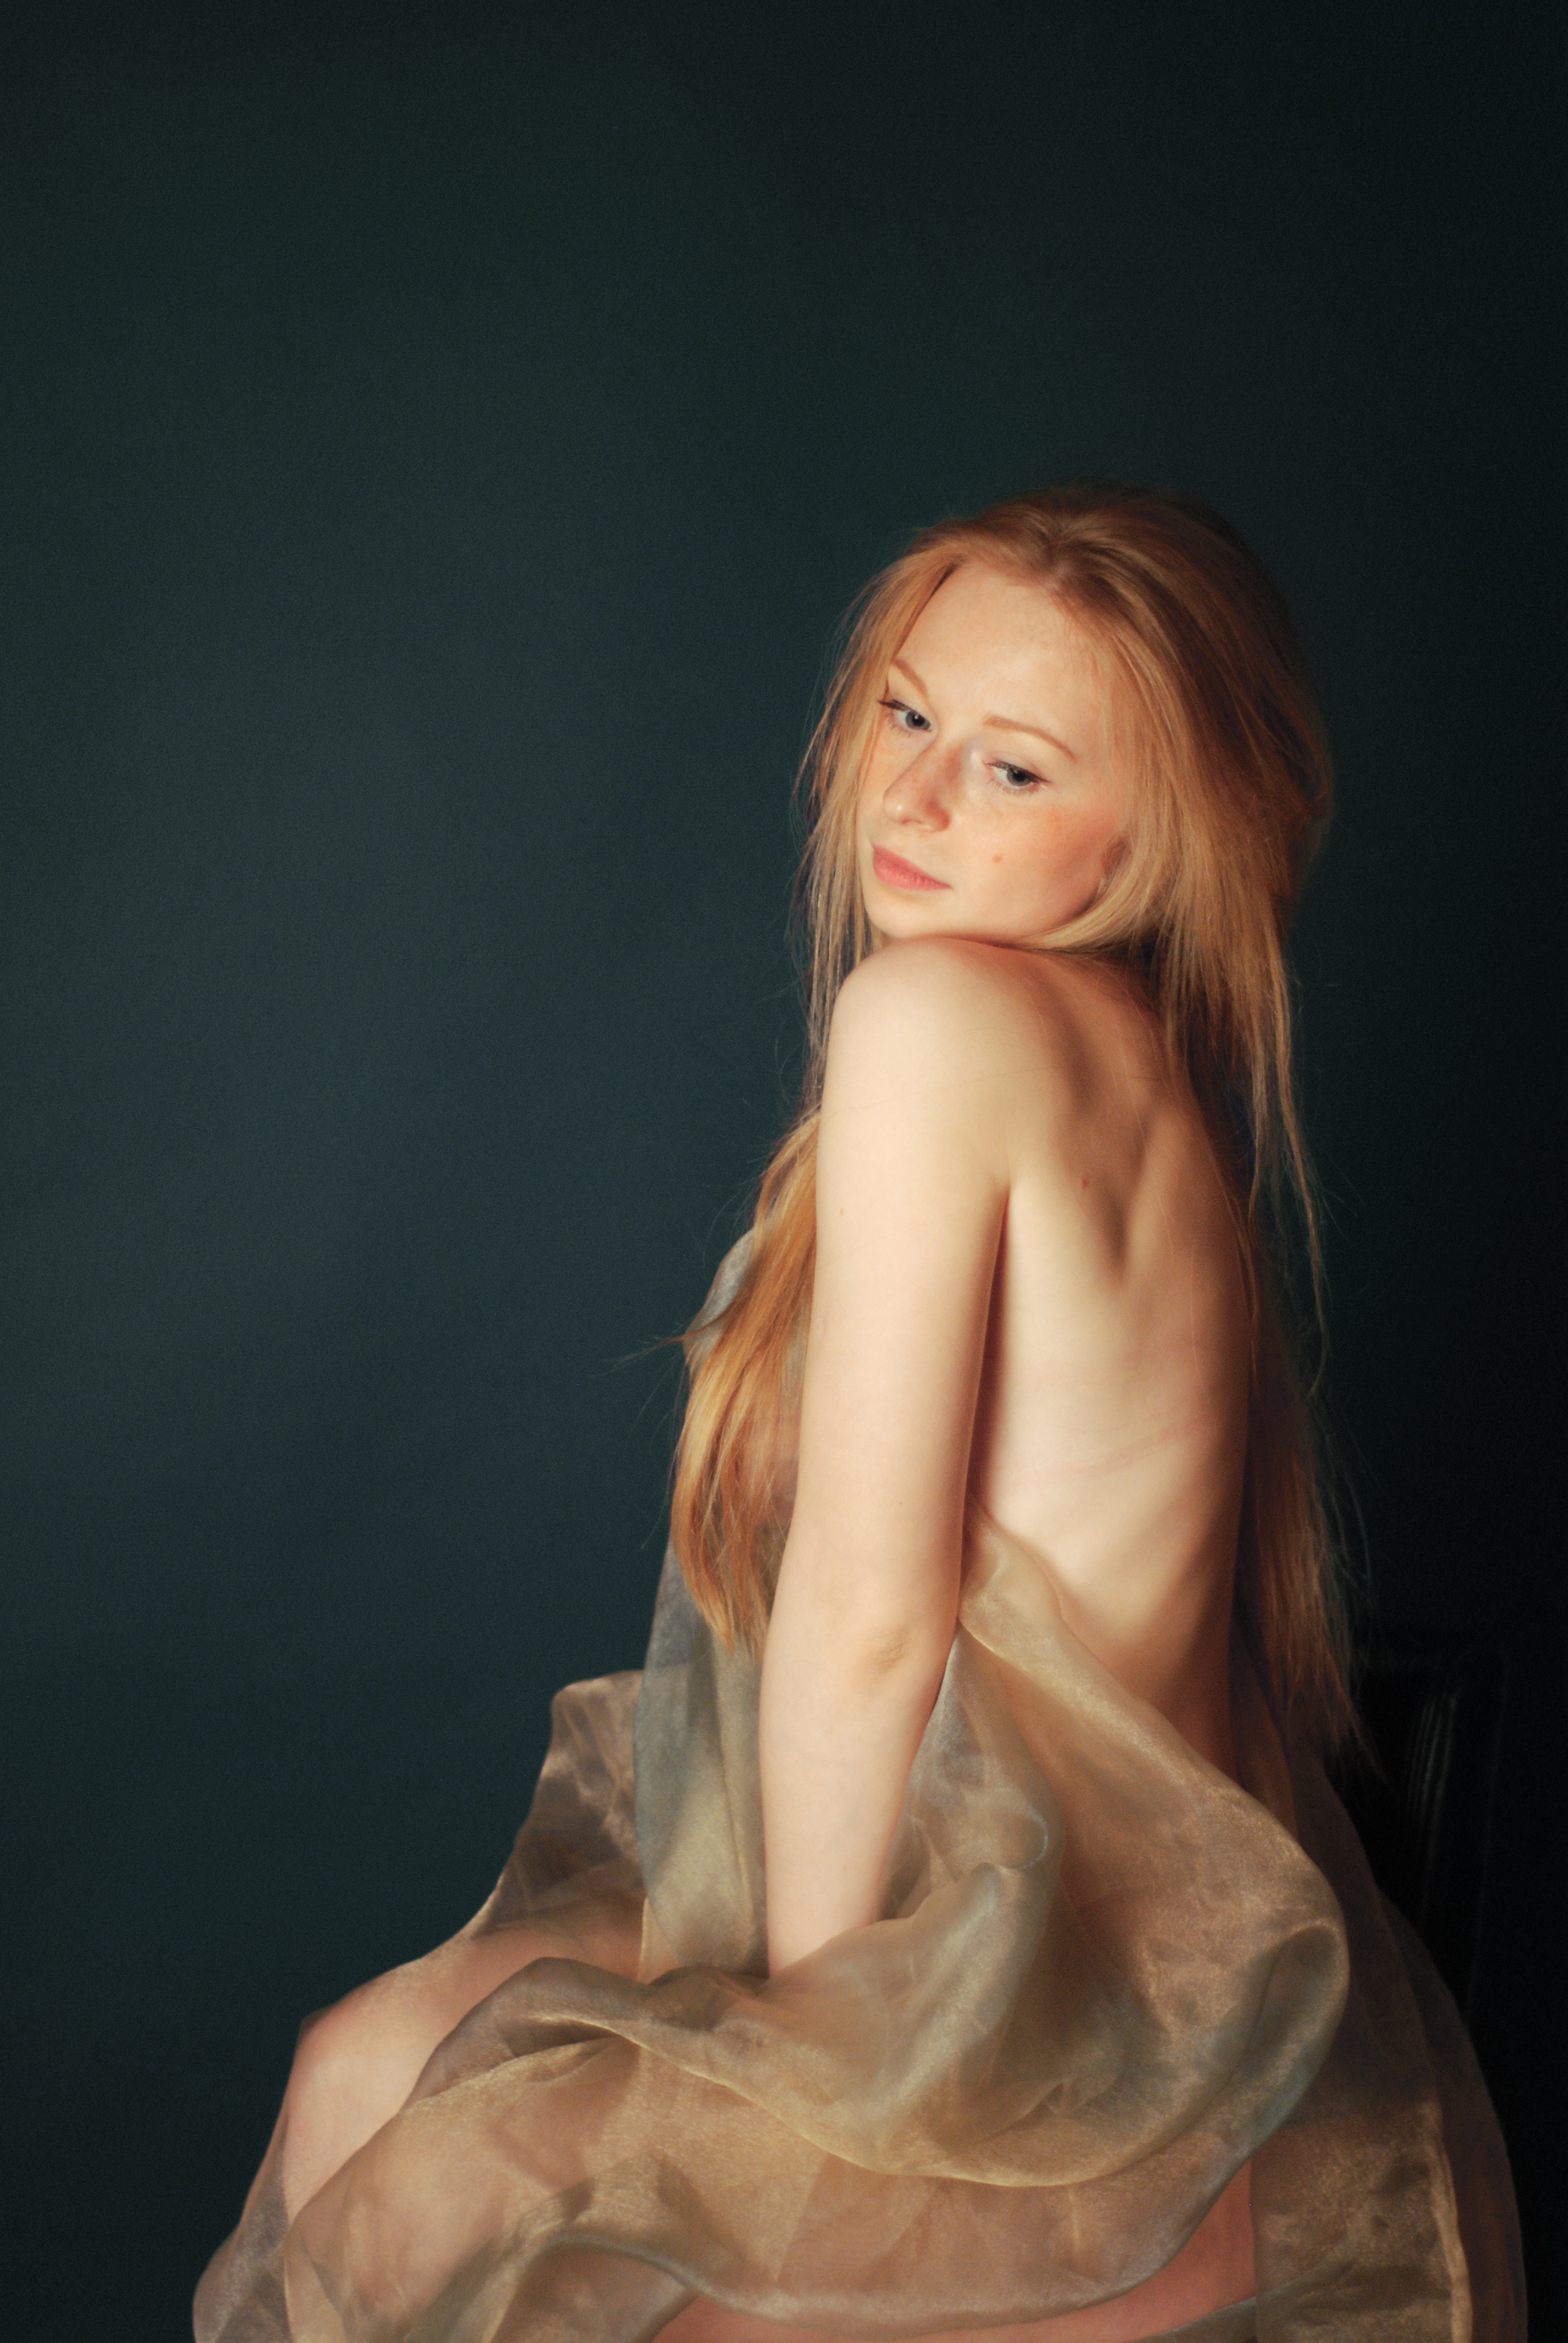 woman redheads long hair HD Wallpaper